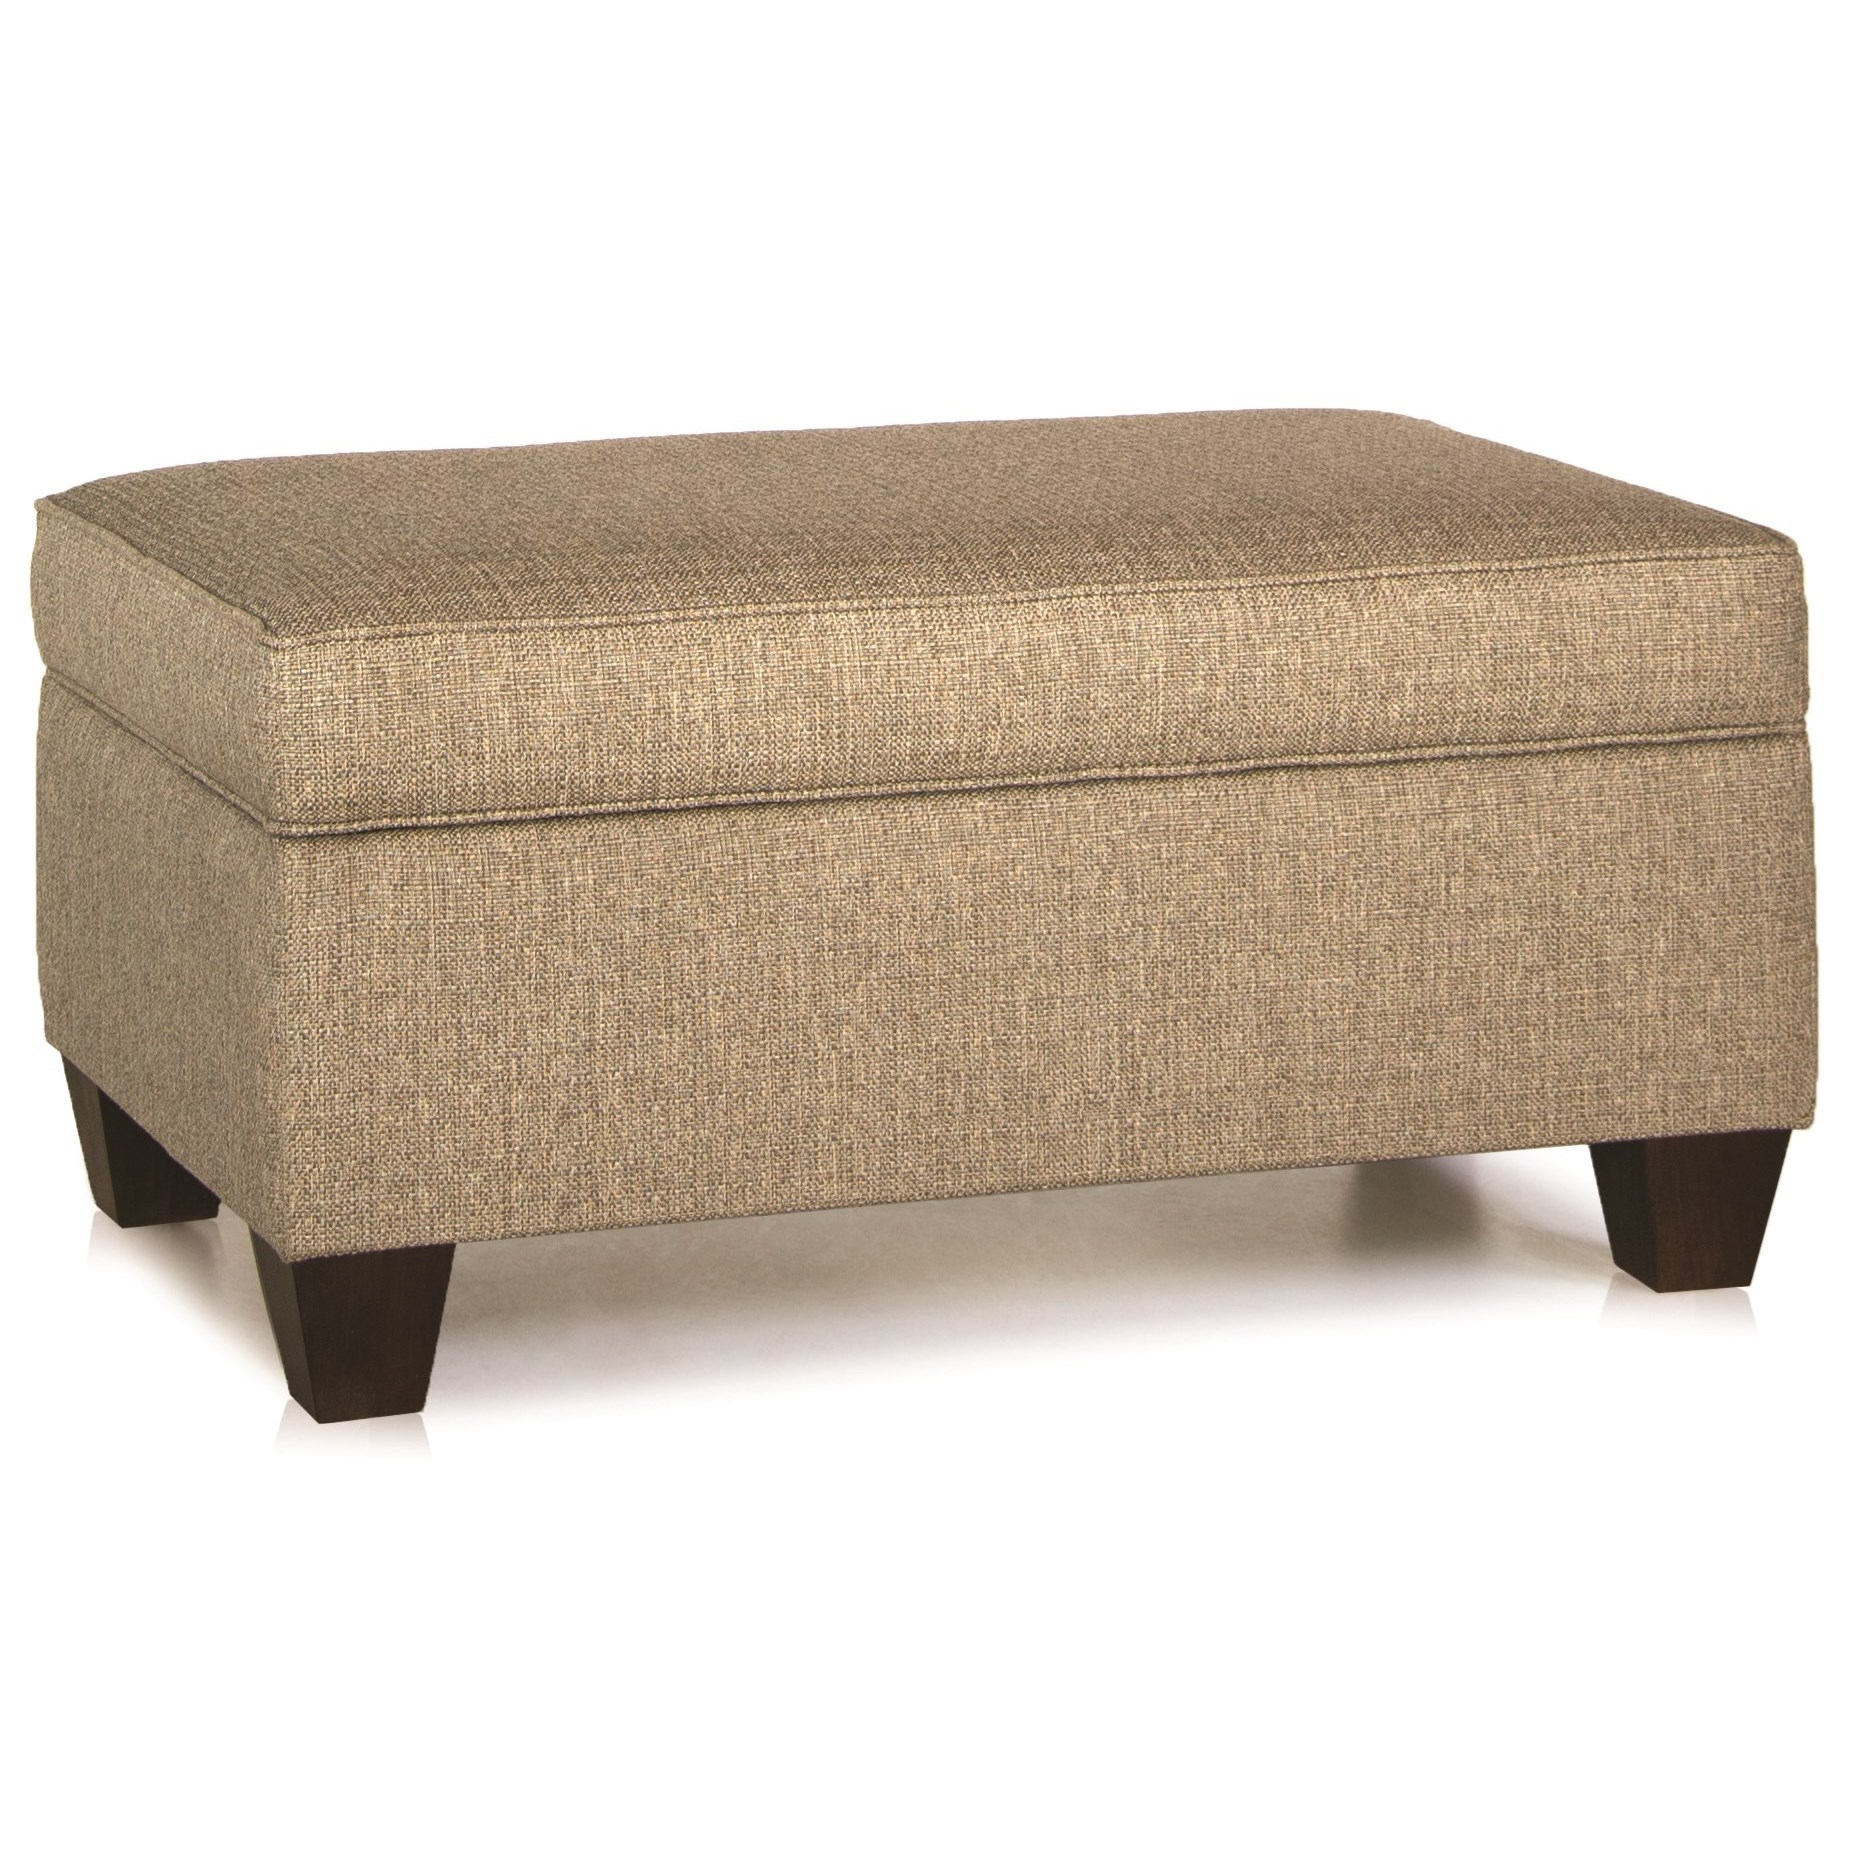 Charmant Storage Ottoman With Tapered Wood Legs